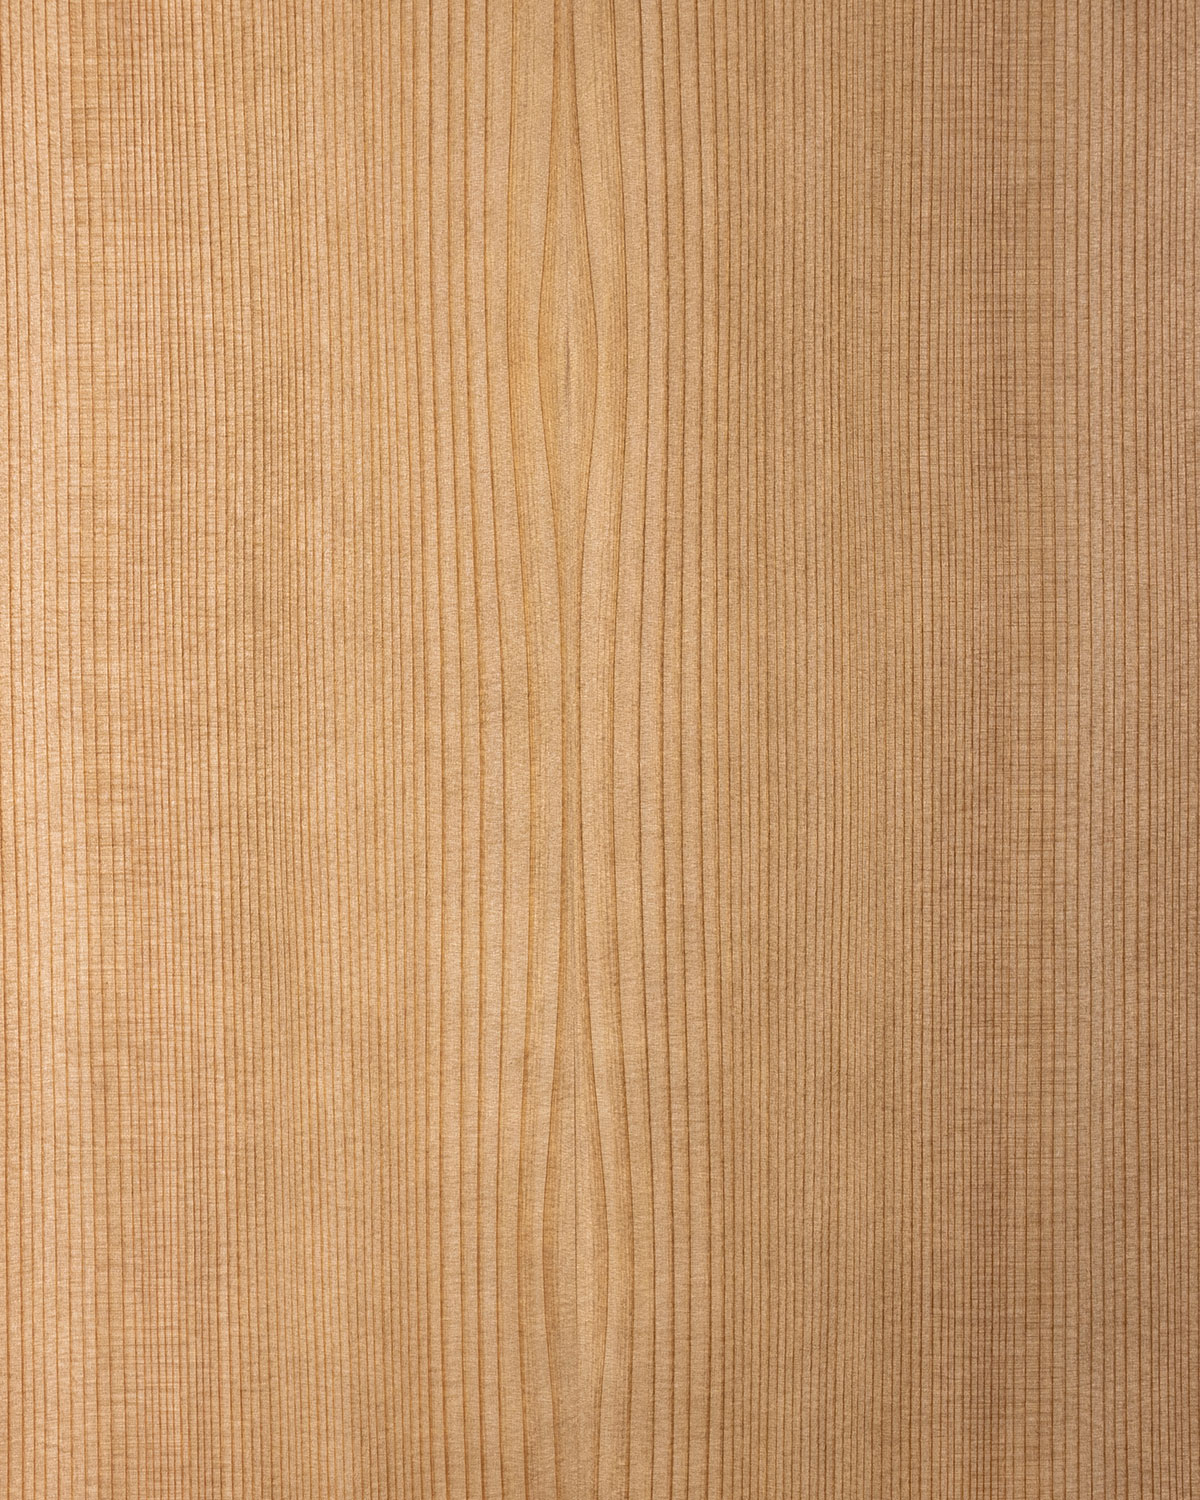 Cedar, Japanese Quarter Cut